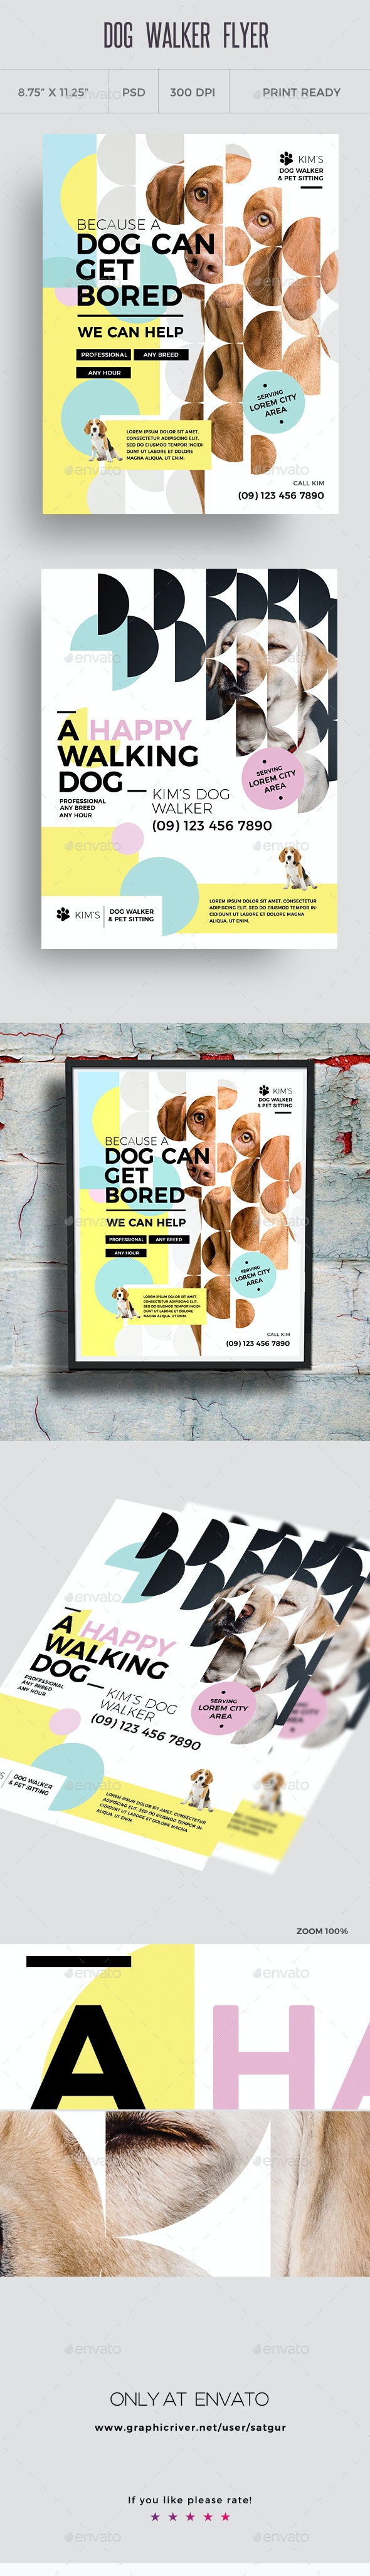 Dog Walker Flyer Templates - Corporate Flyers